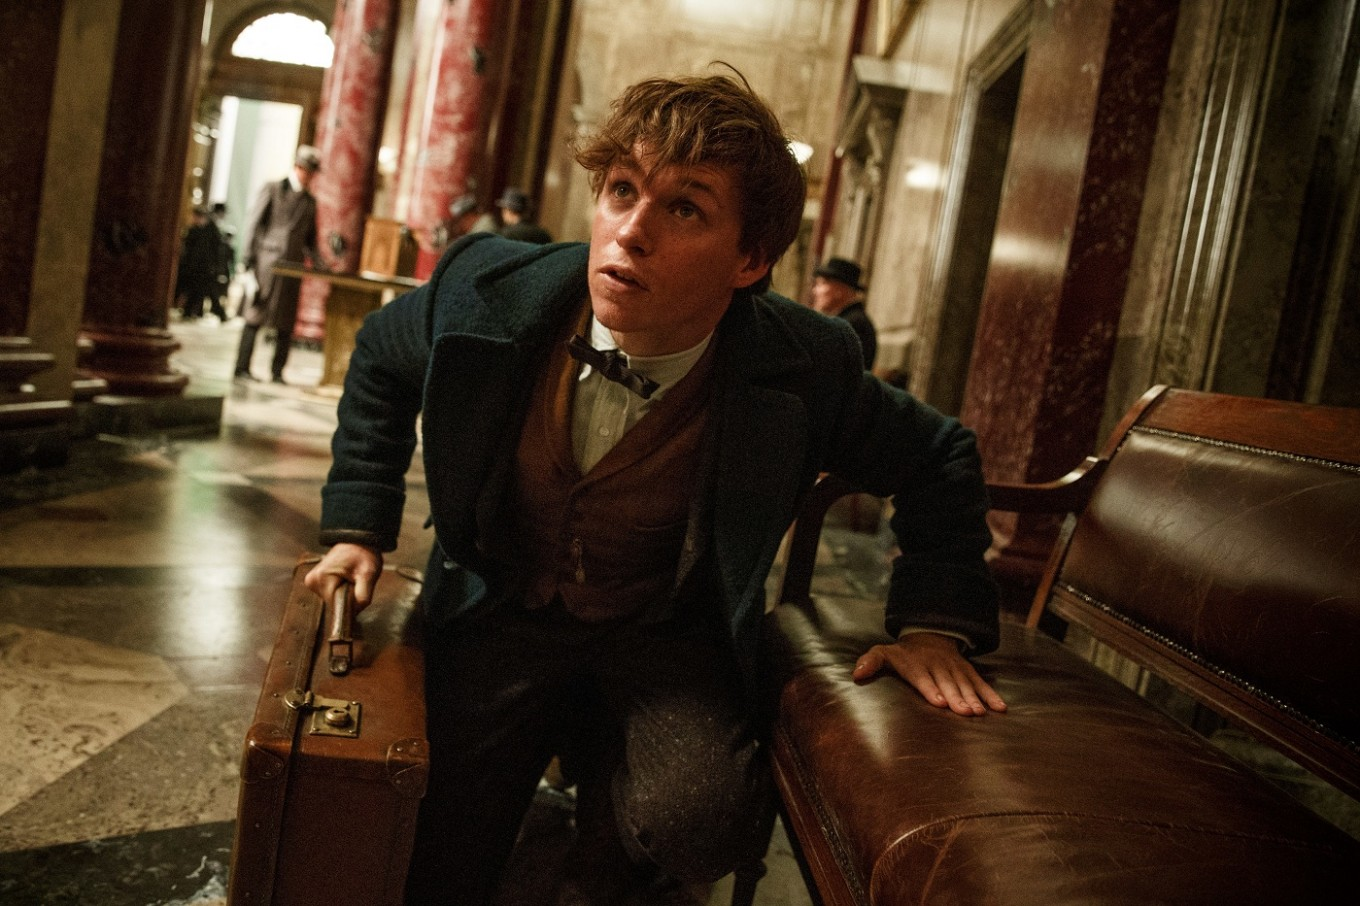 5 things we know about 'Fantastic Beasts and Where to Find Them'